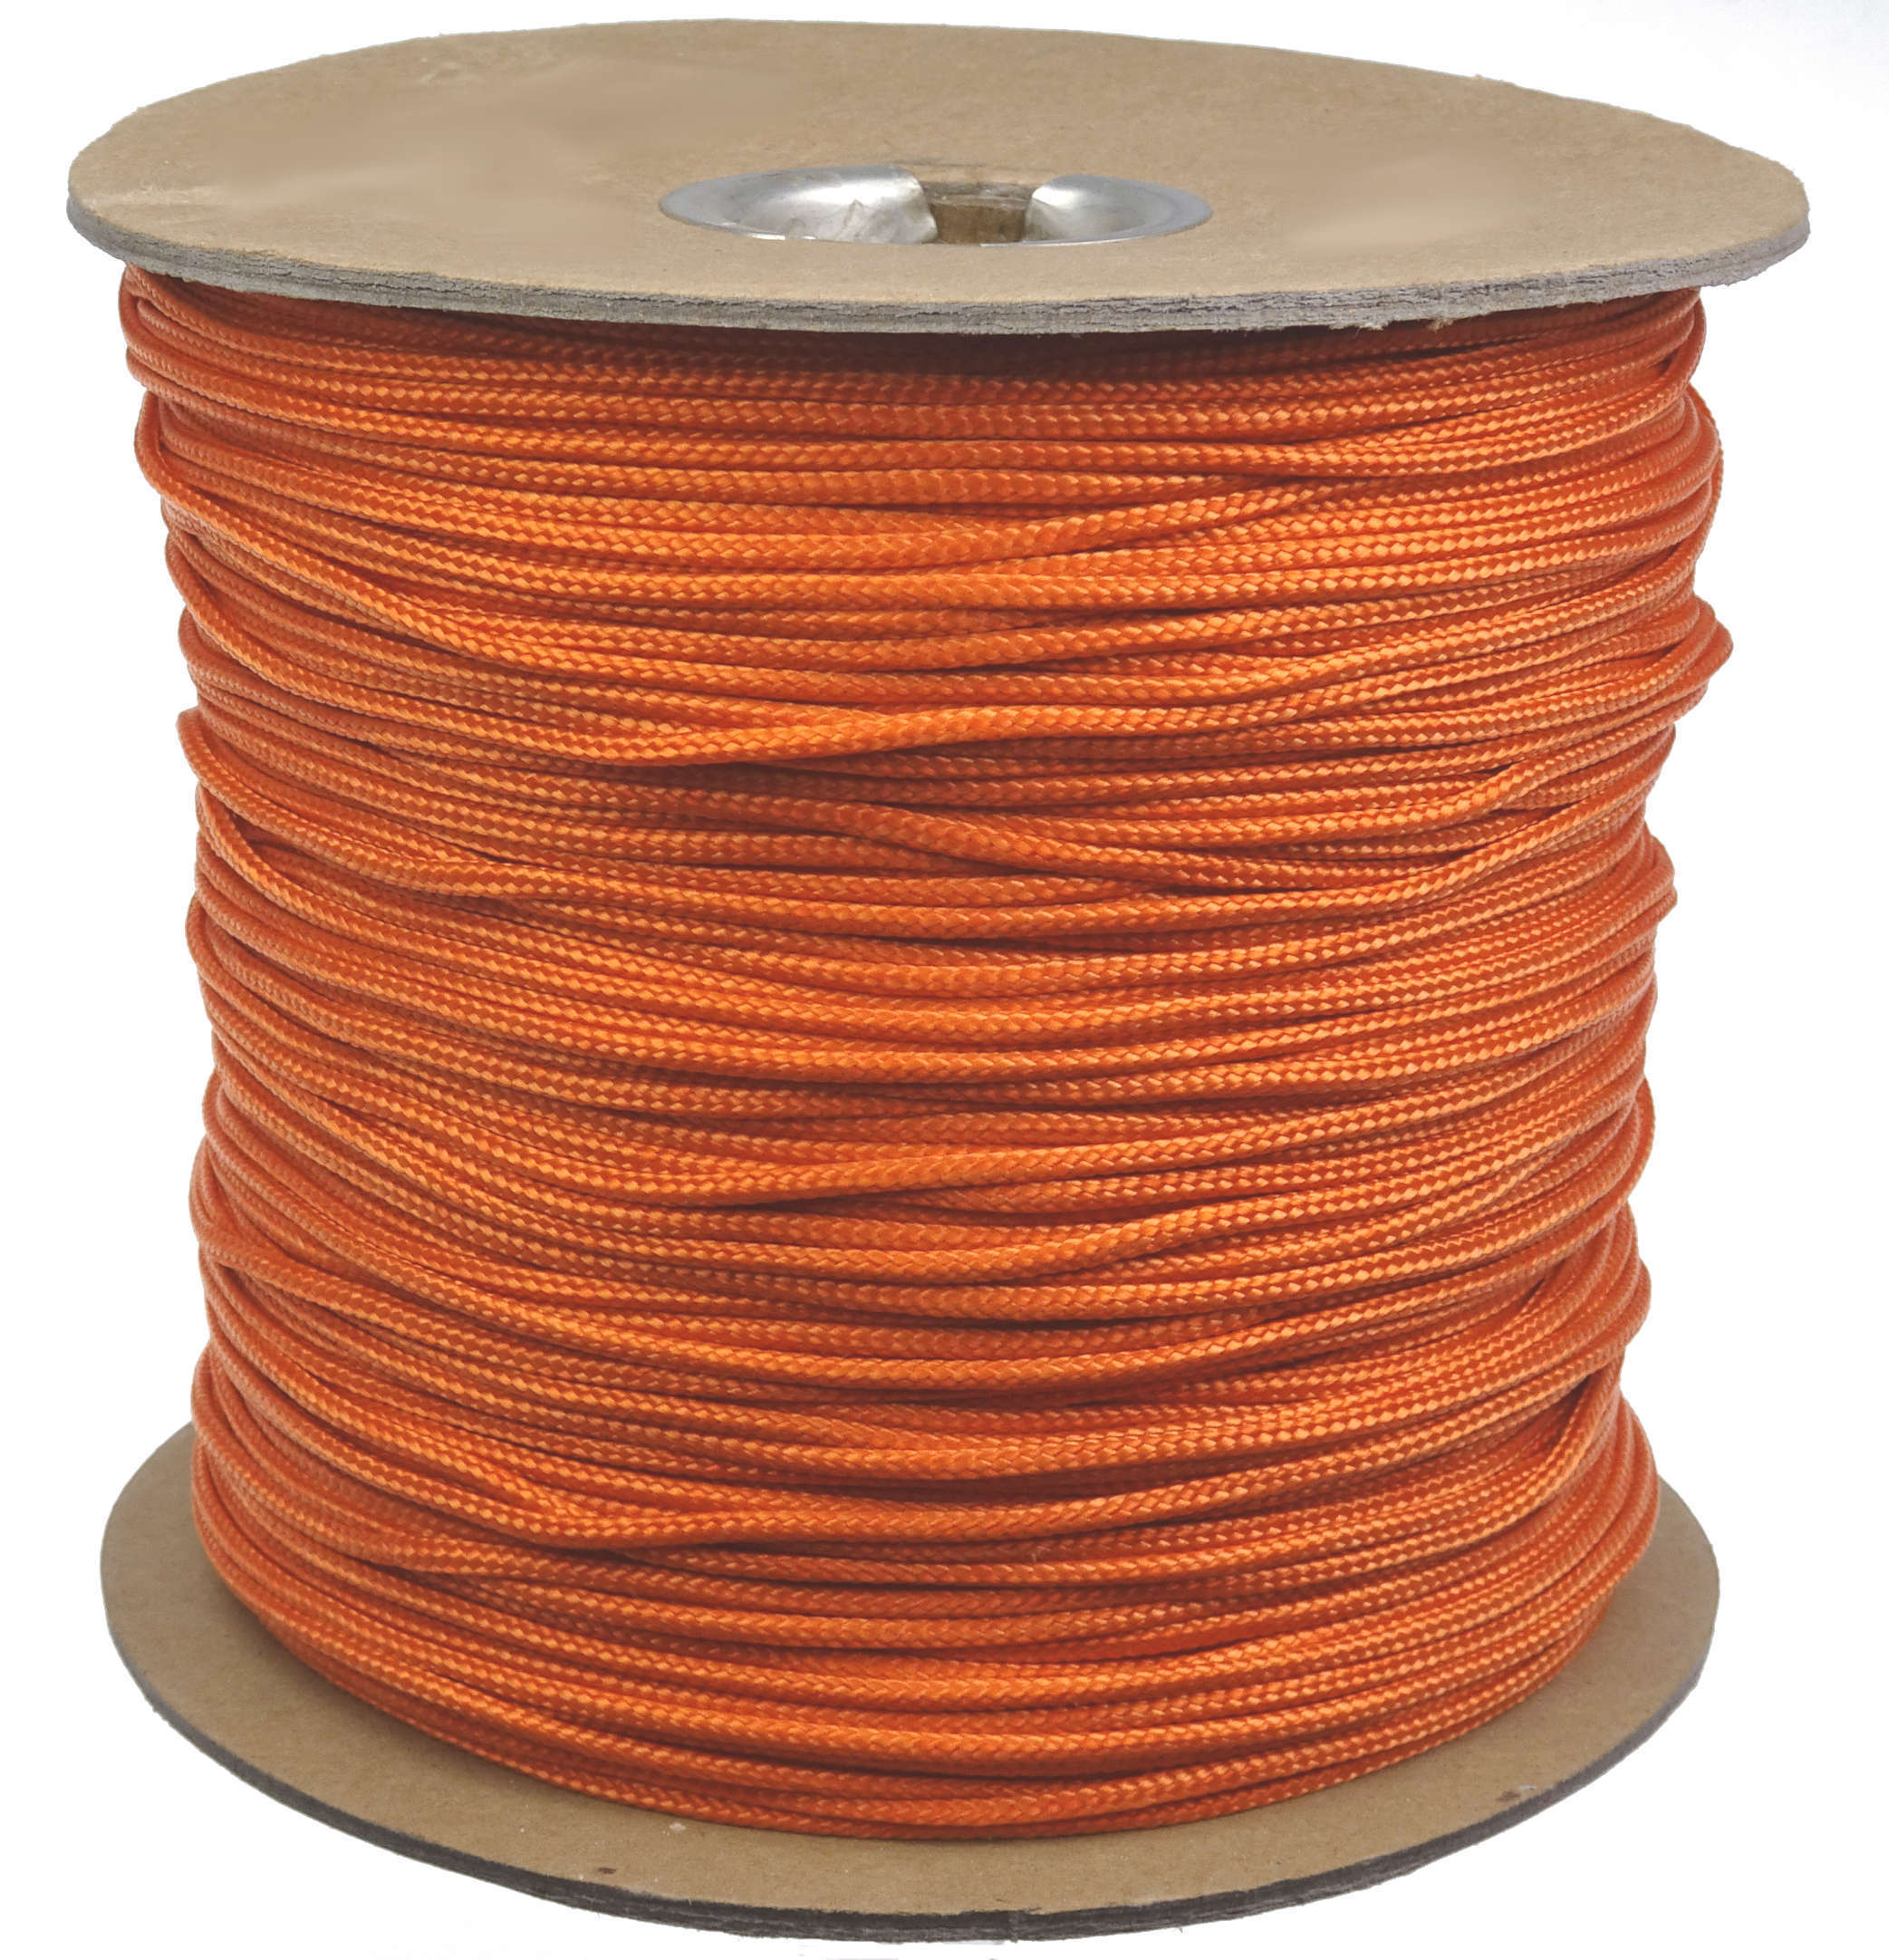 P.cord Micro Type1, International Orange